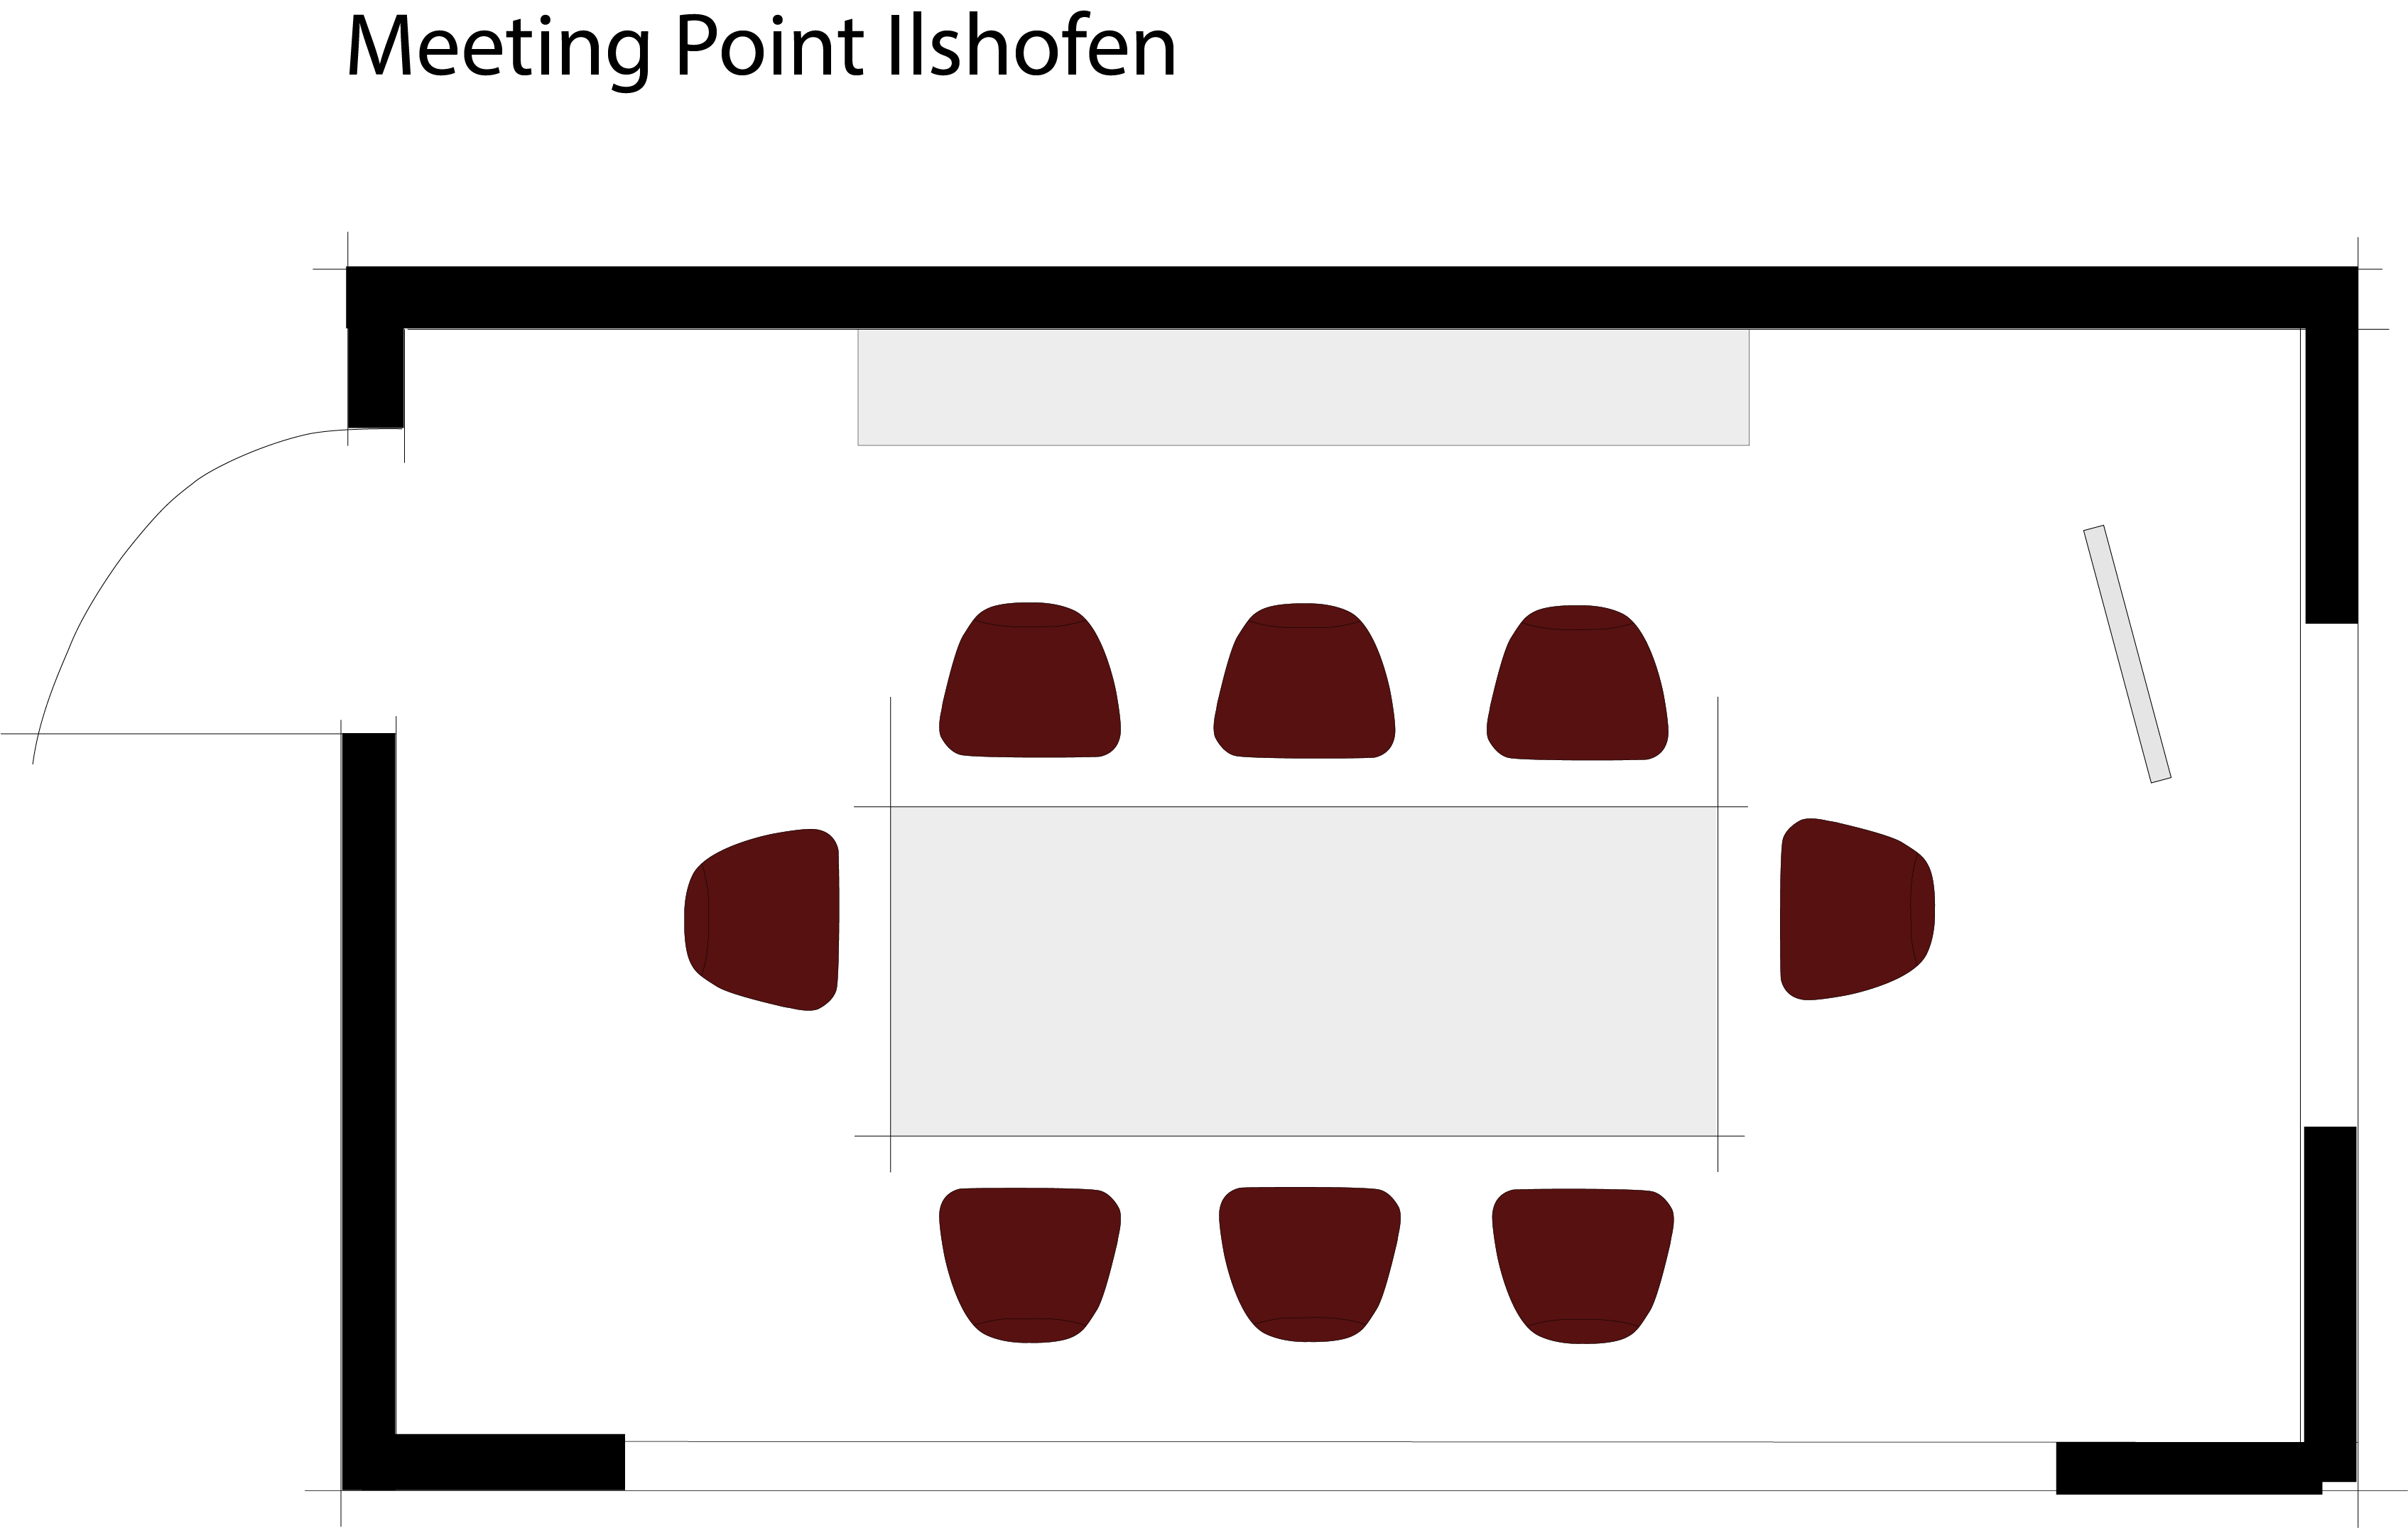 Messe-Bestuhlungsplan-Meeting-Point-Ilshofen